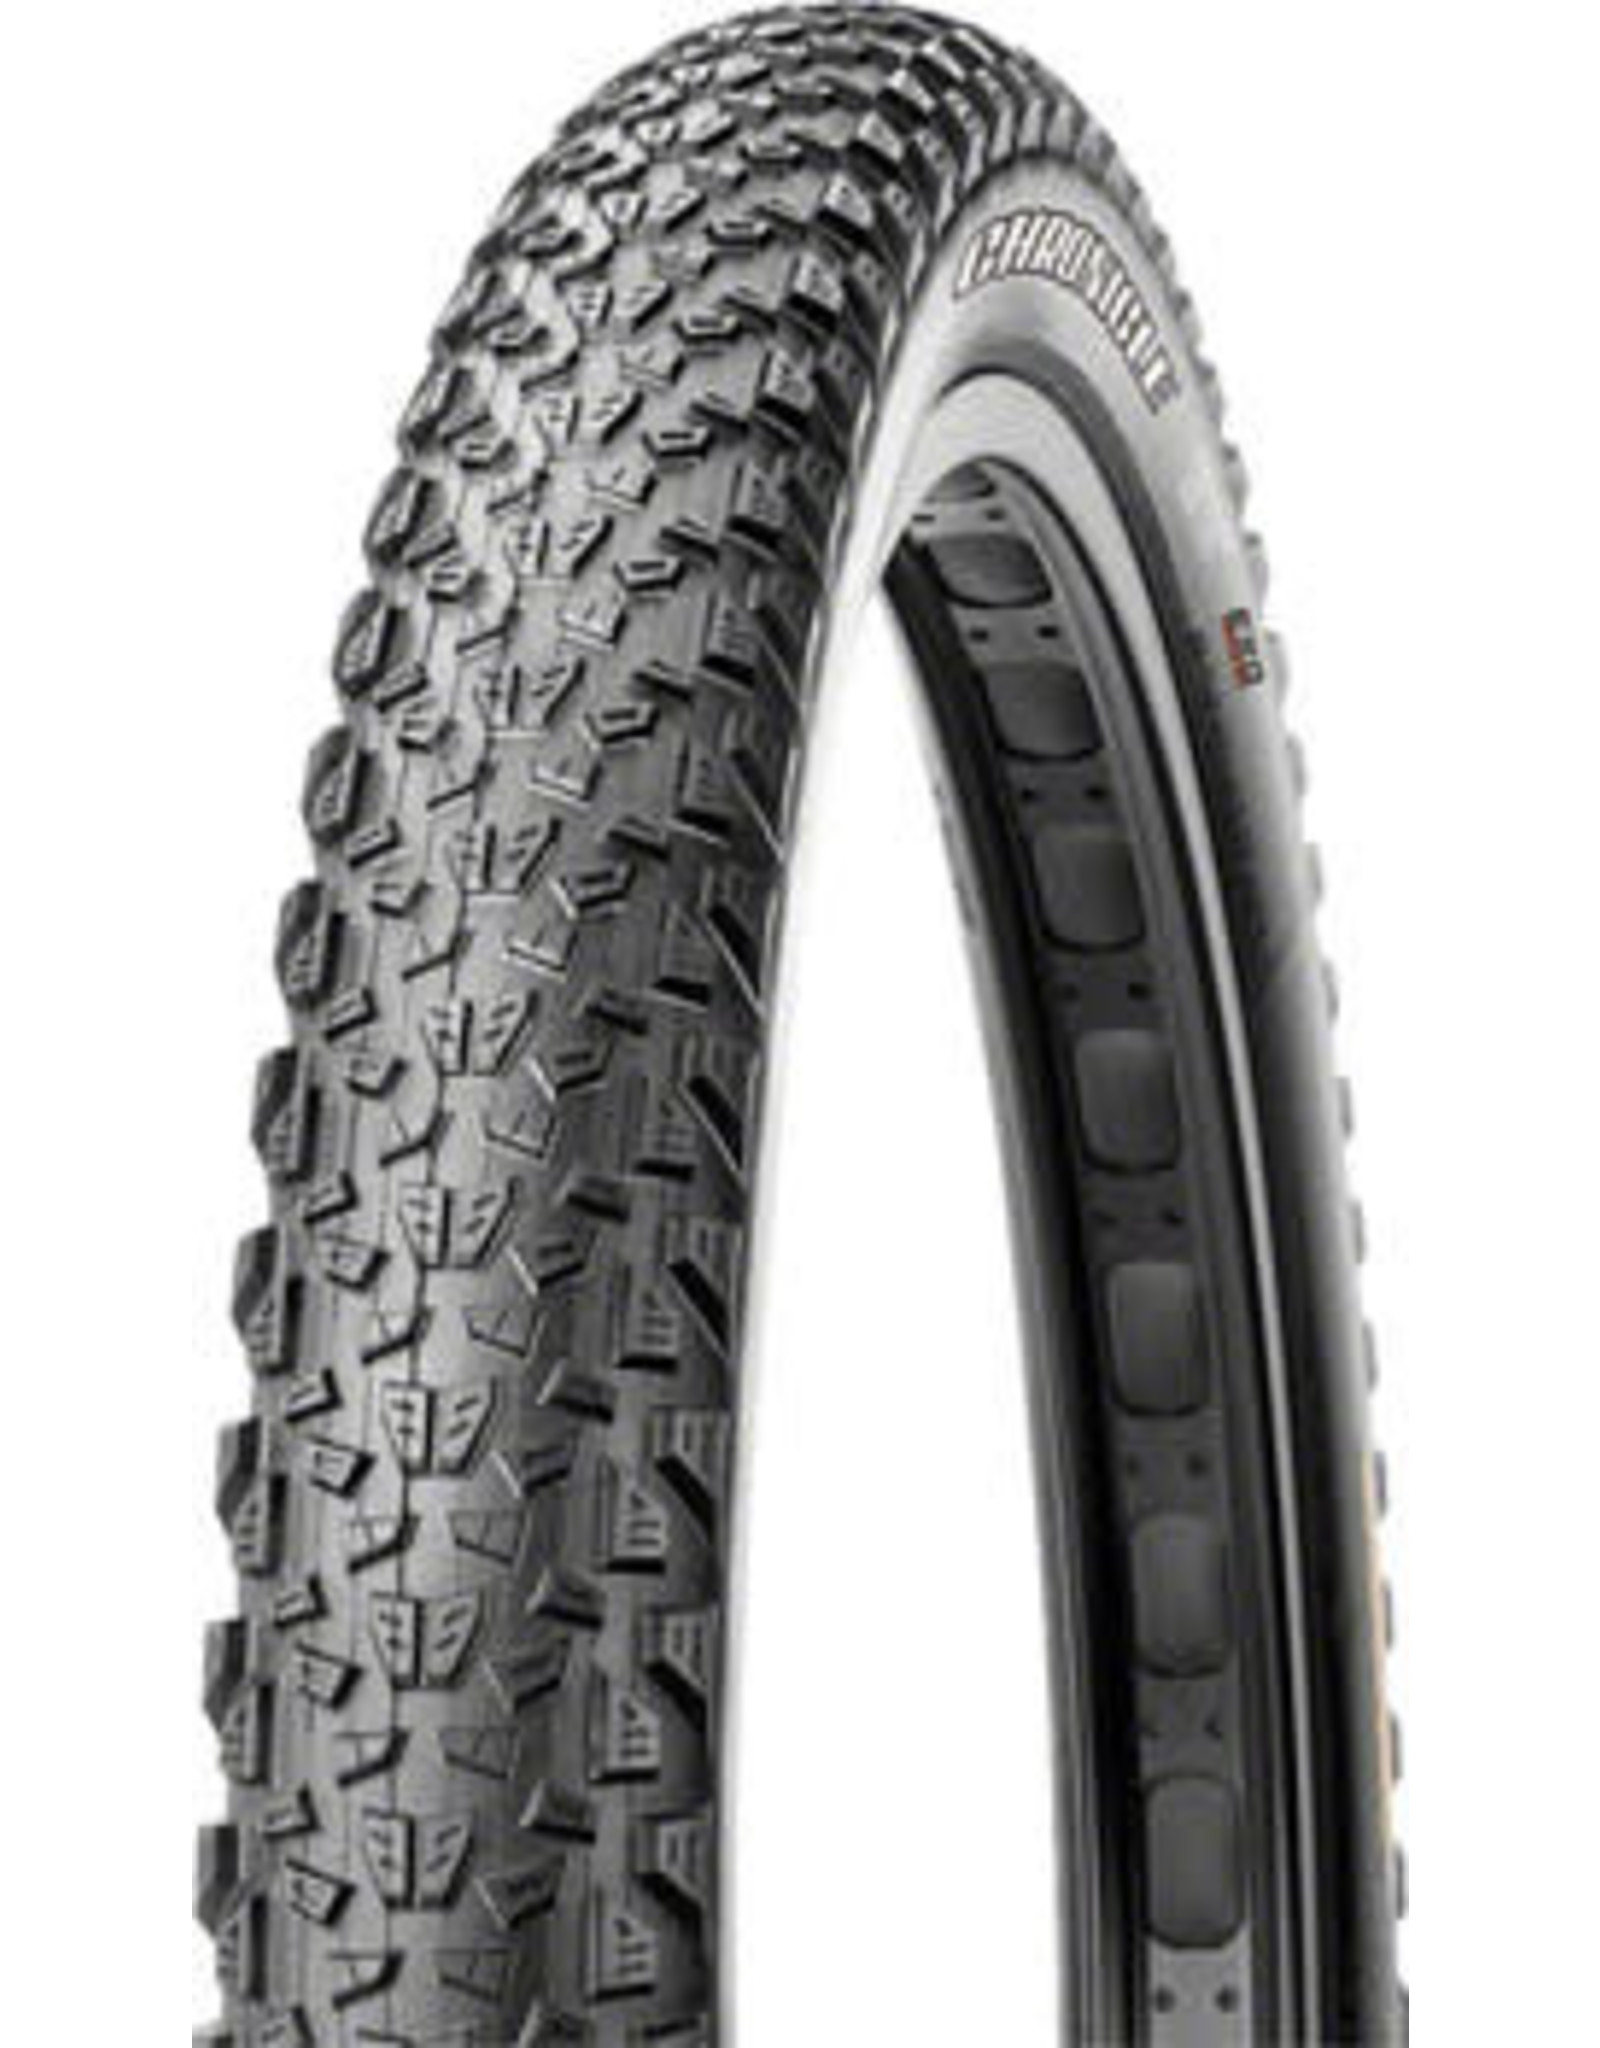 """maxxis Maxxis Chronicle Tire: 27.5+ x 3.0"""" Folding, 60tpi, Dual Compound"""